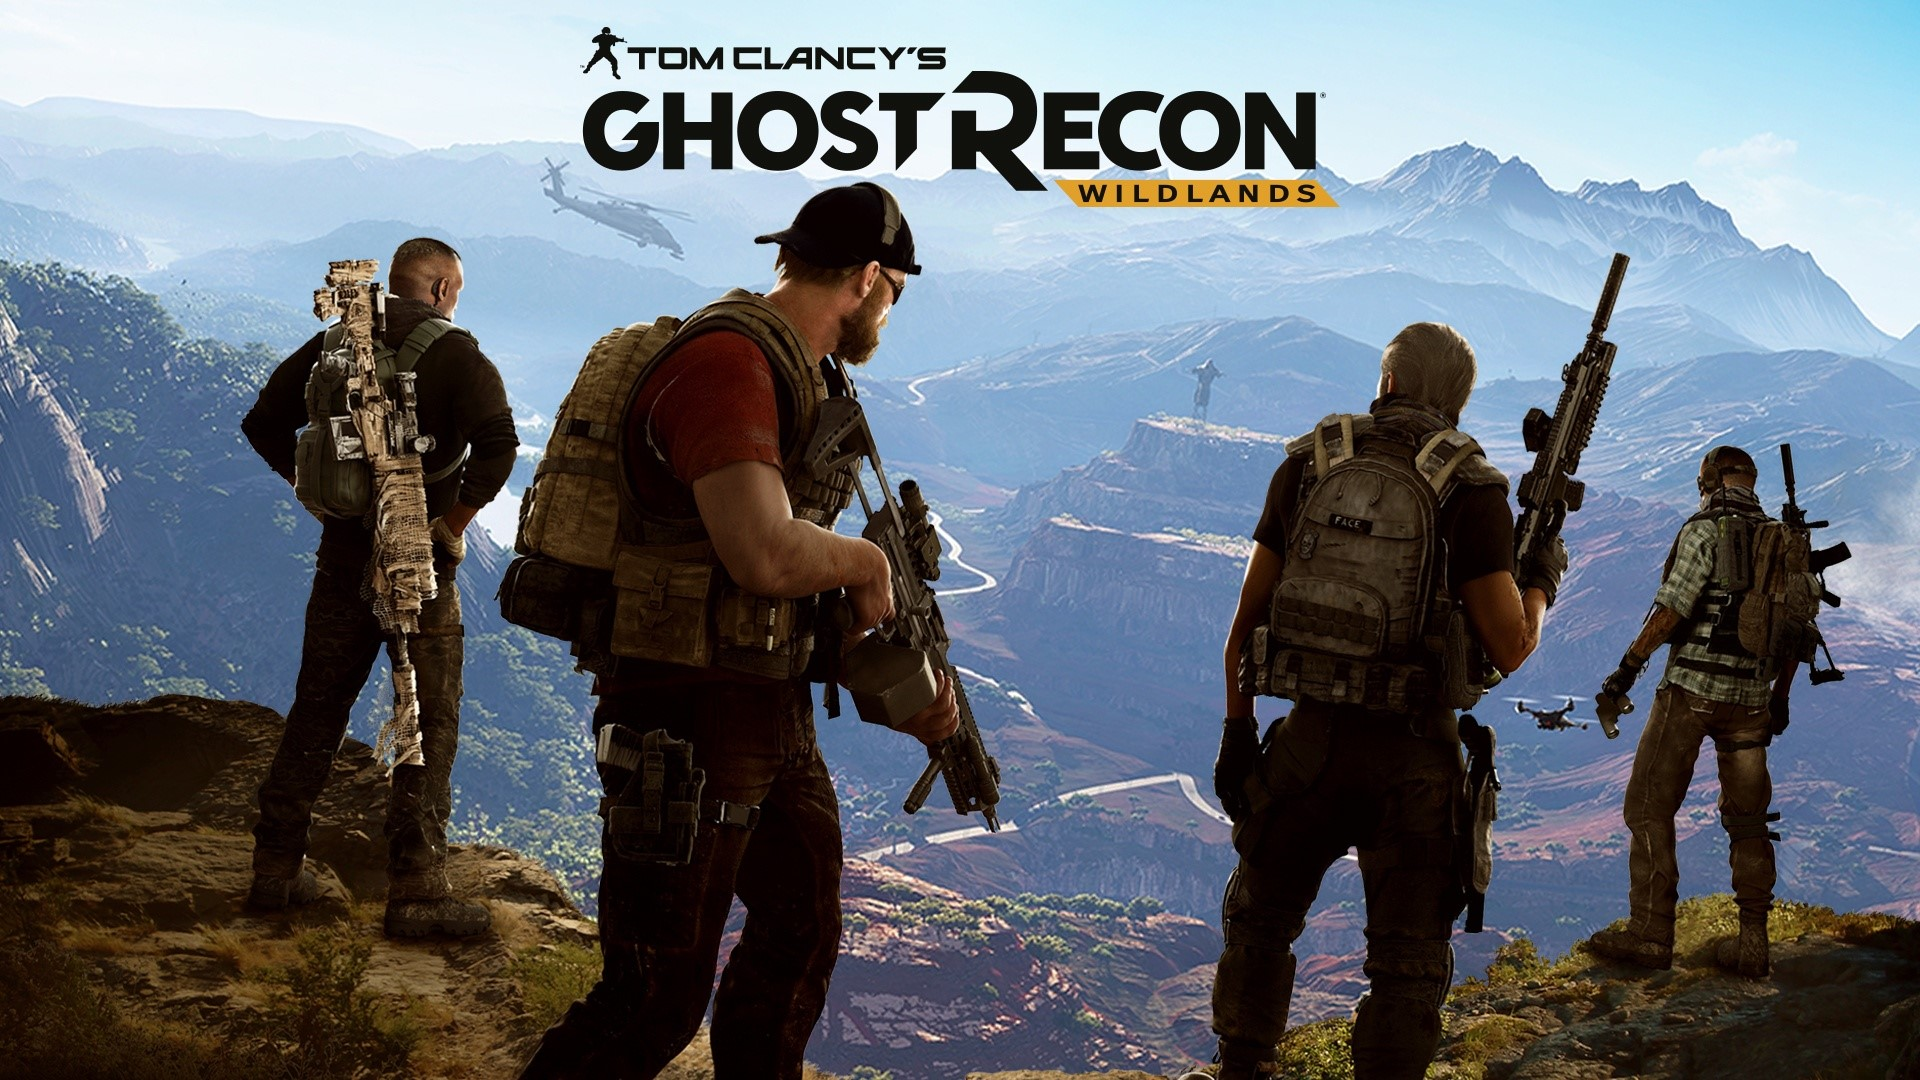 Fondo de pantalla de Tom Clancys Ghost Recon Wildlands Imágenes